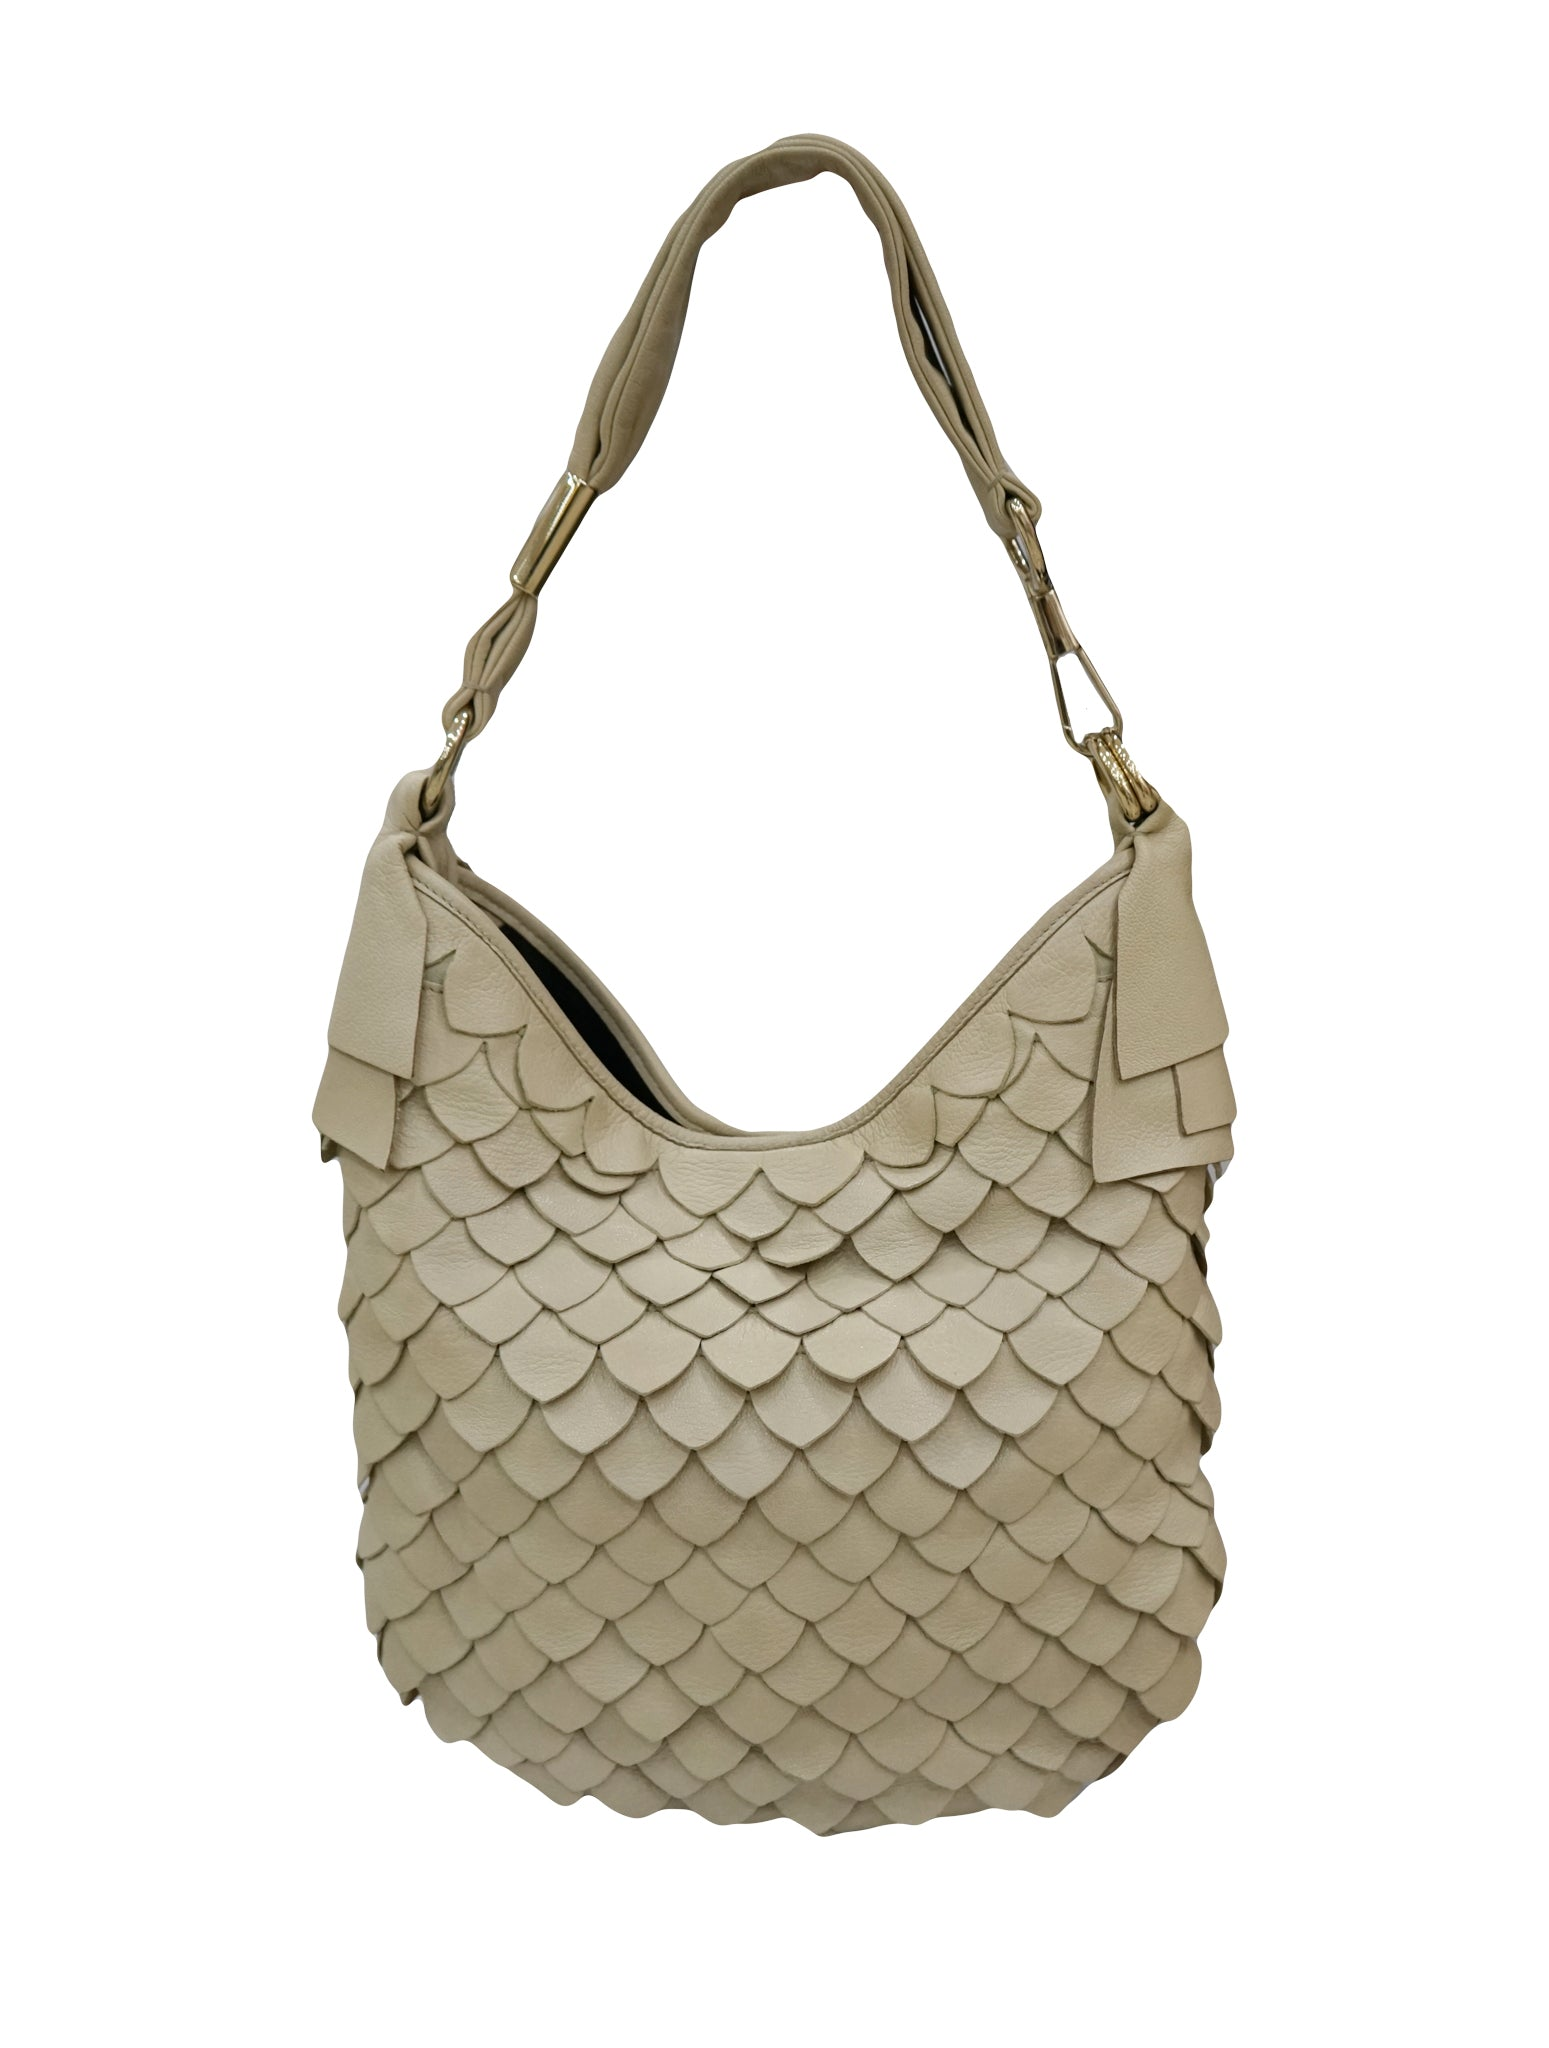 YVES SAINT LAURENT TROPEZ FISH SCALE LEATHER BAG – Kidsstyleforless 6adb4c553a